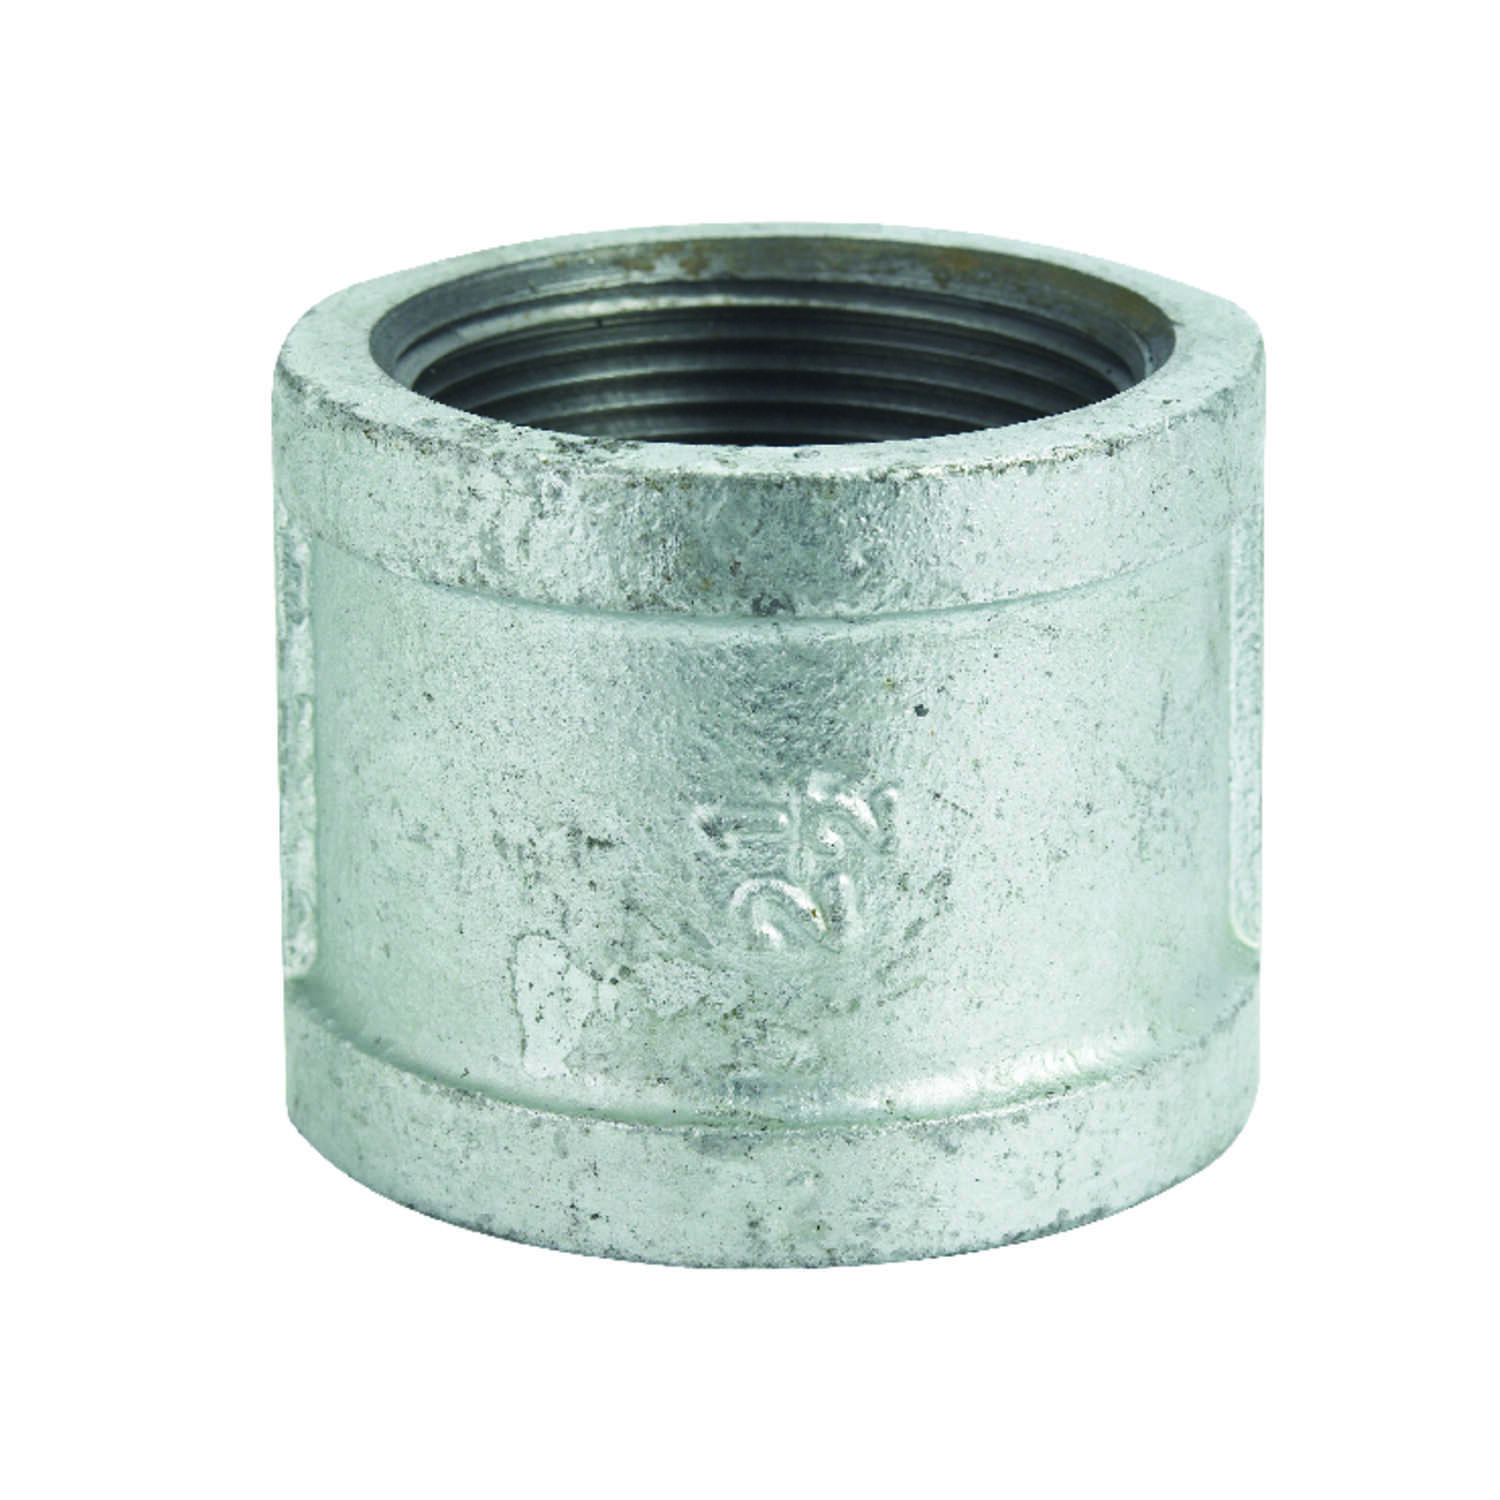 B & K  2-1/2 in. FPT   x 2-1/2 in. Dia. FPT  Galvanized  Malleable Iron  Coupling